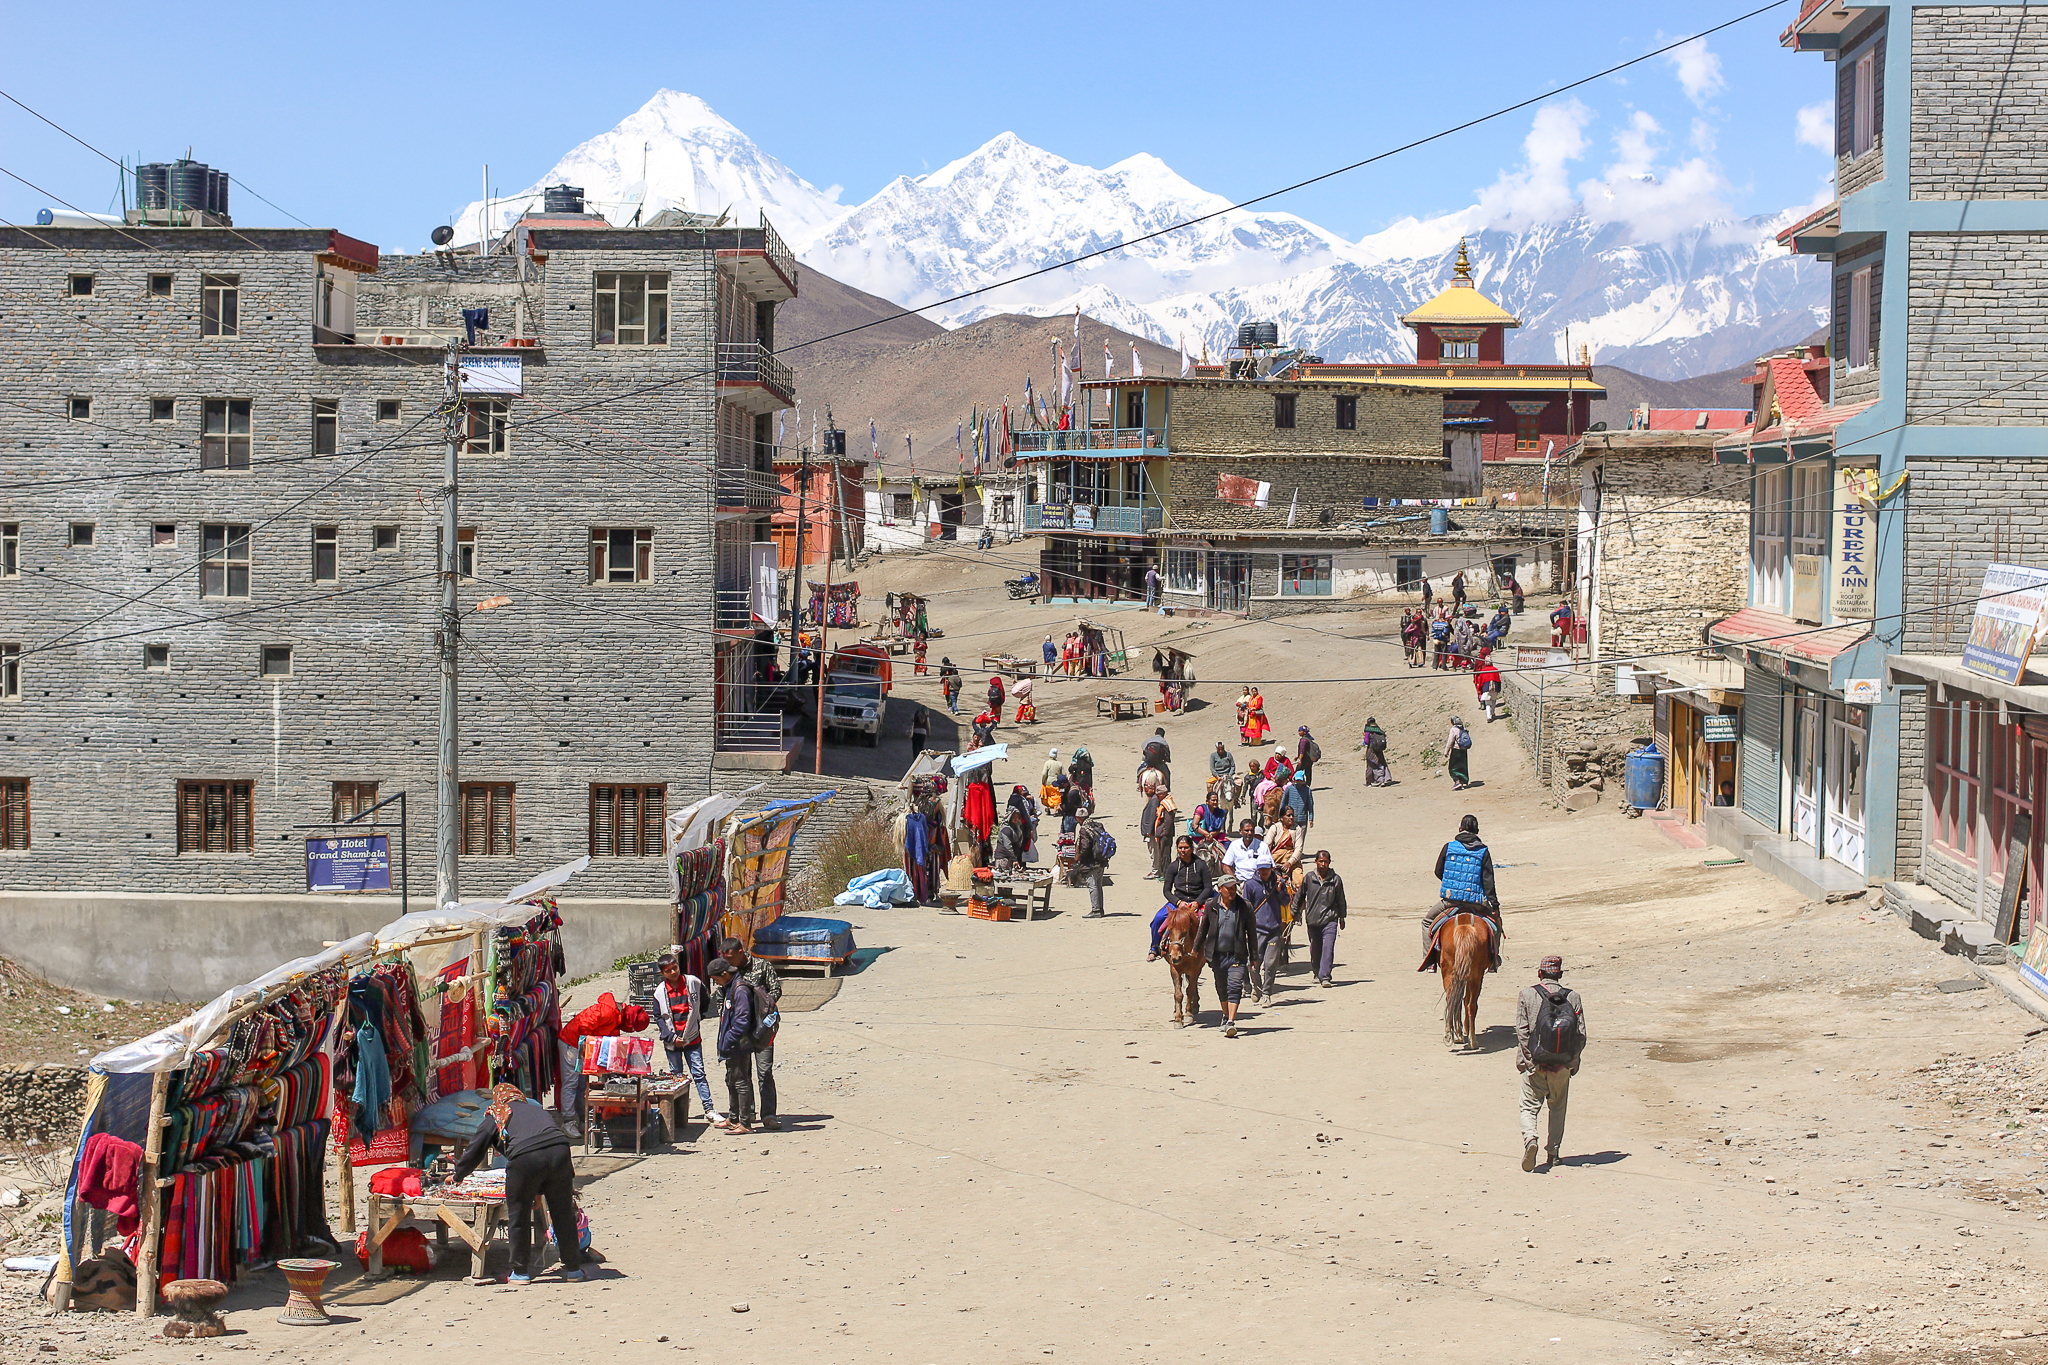 Ranipauwa at the foot of Thorong La pass is a stop-over for Hindu and Buddhist pilgrims on their way to the Temple of Muktinath, and weary trekkers